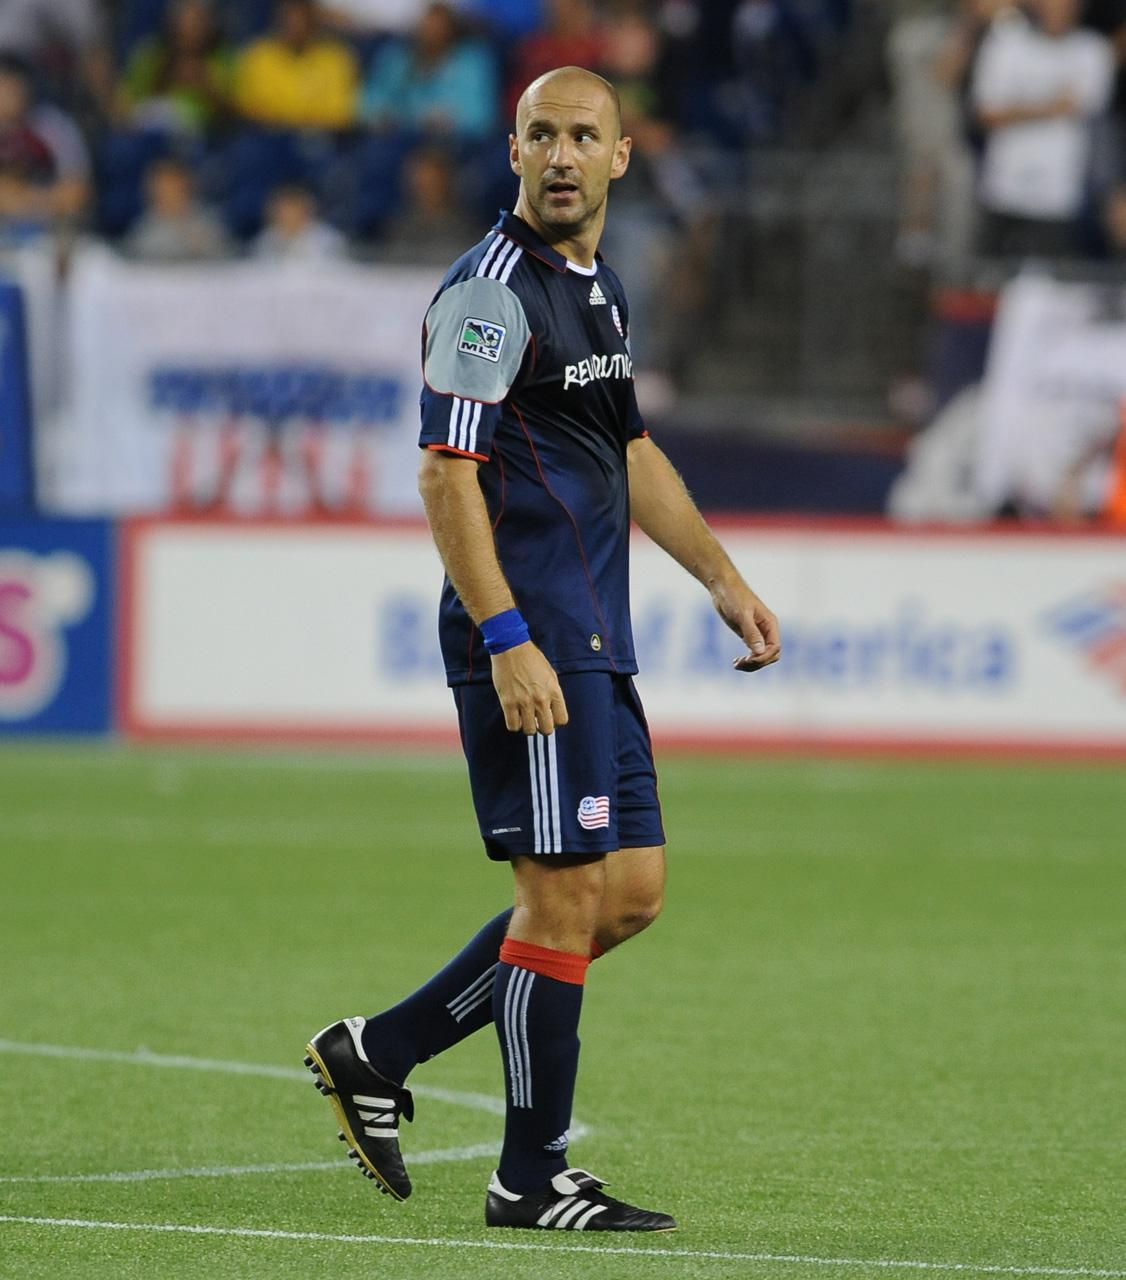 Ilija Stolica has recorded two goals and one assist in his first six league appearances with the Revs